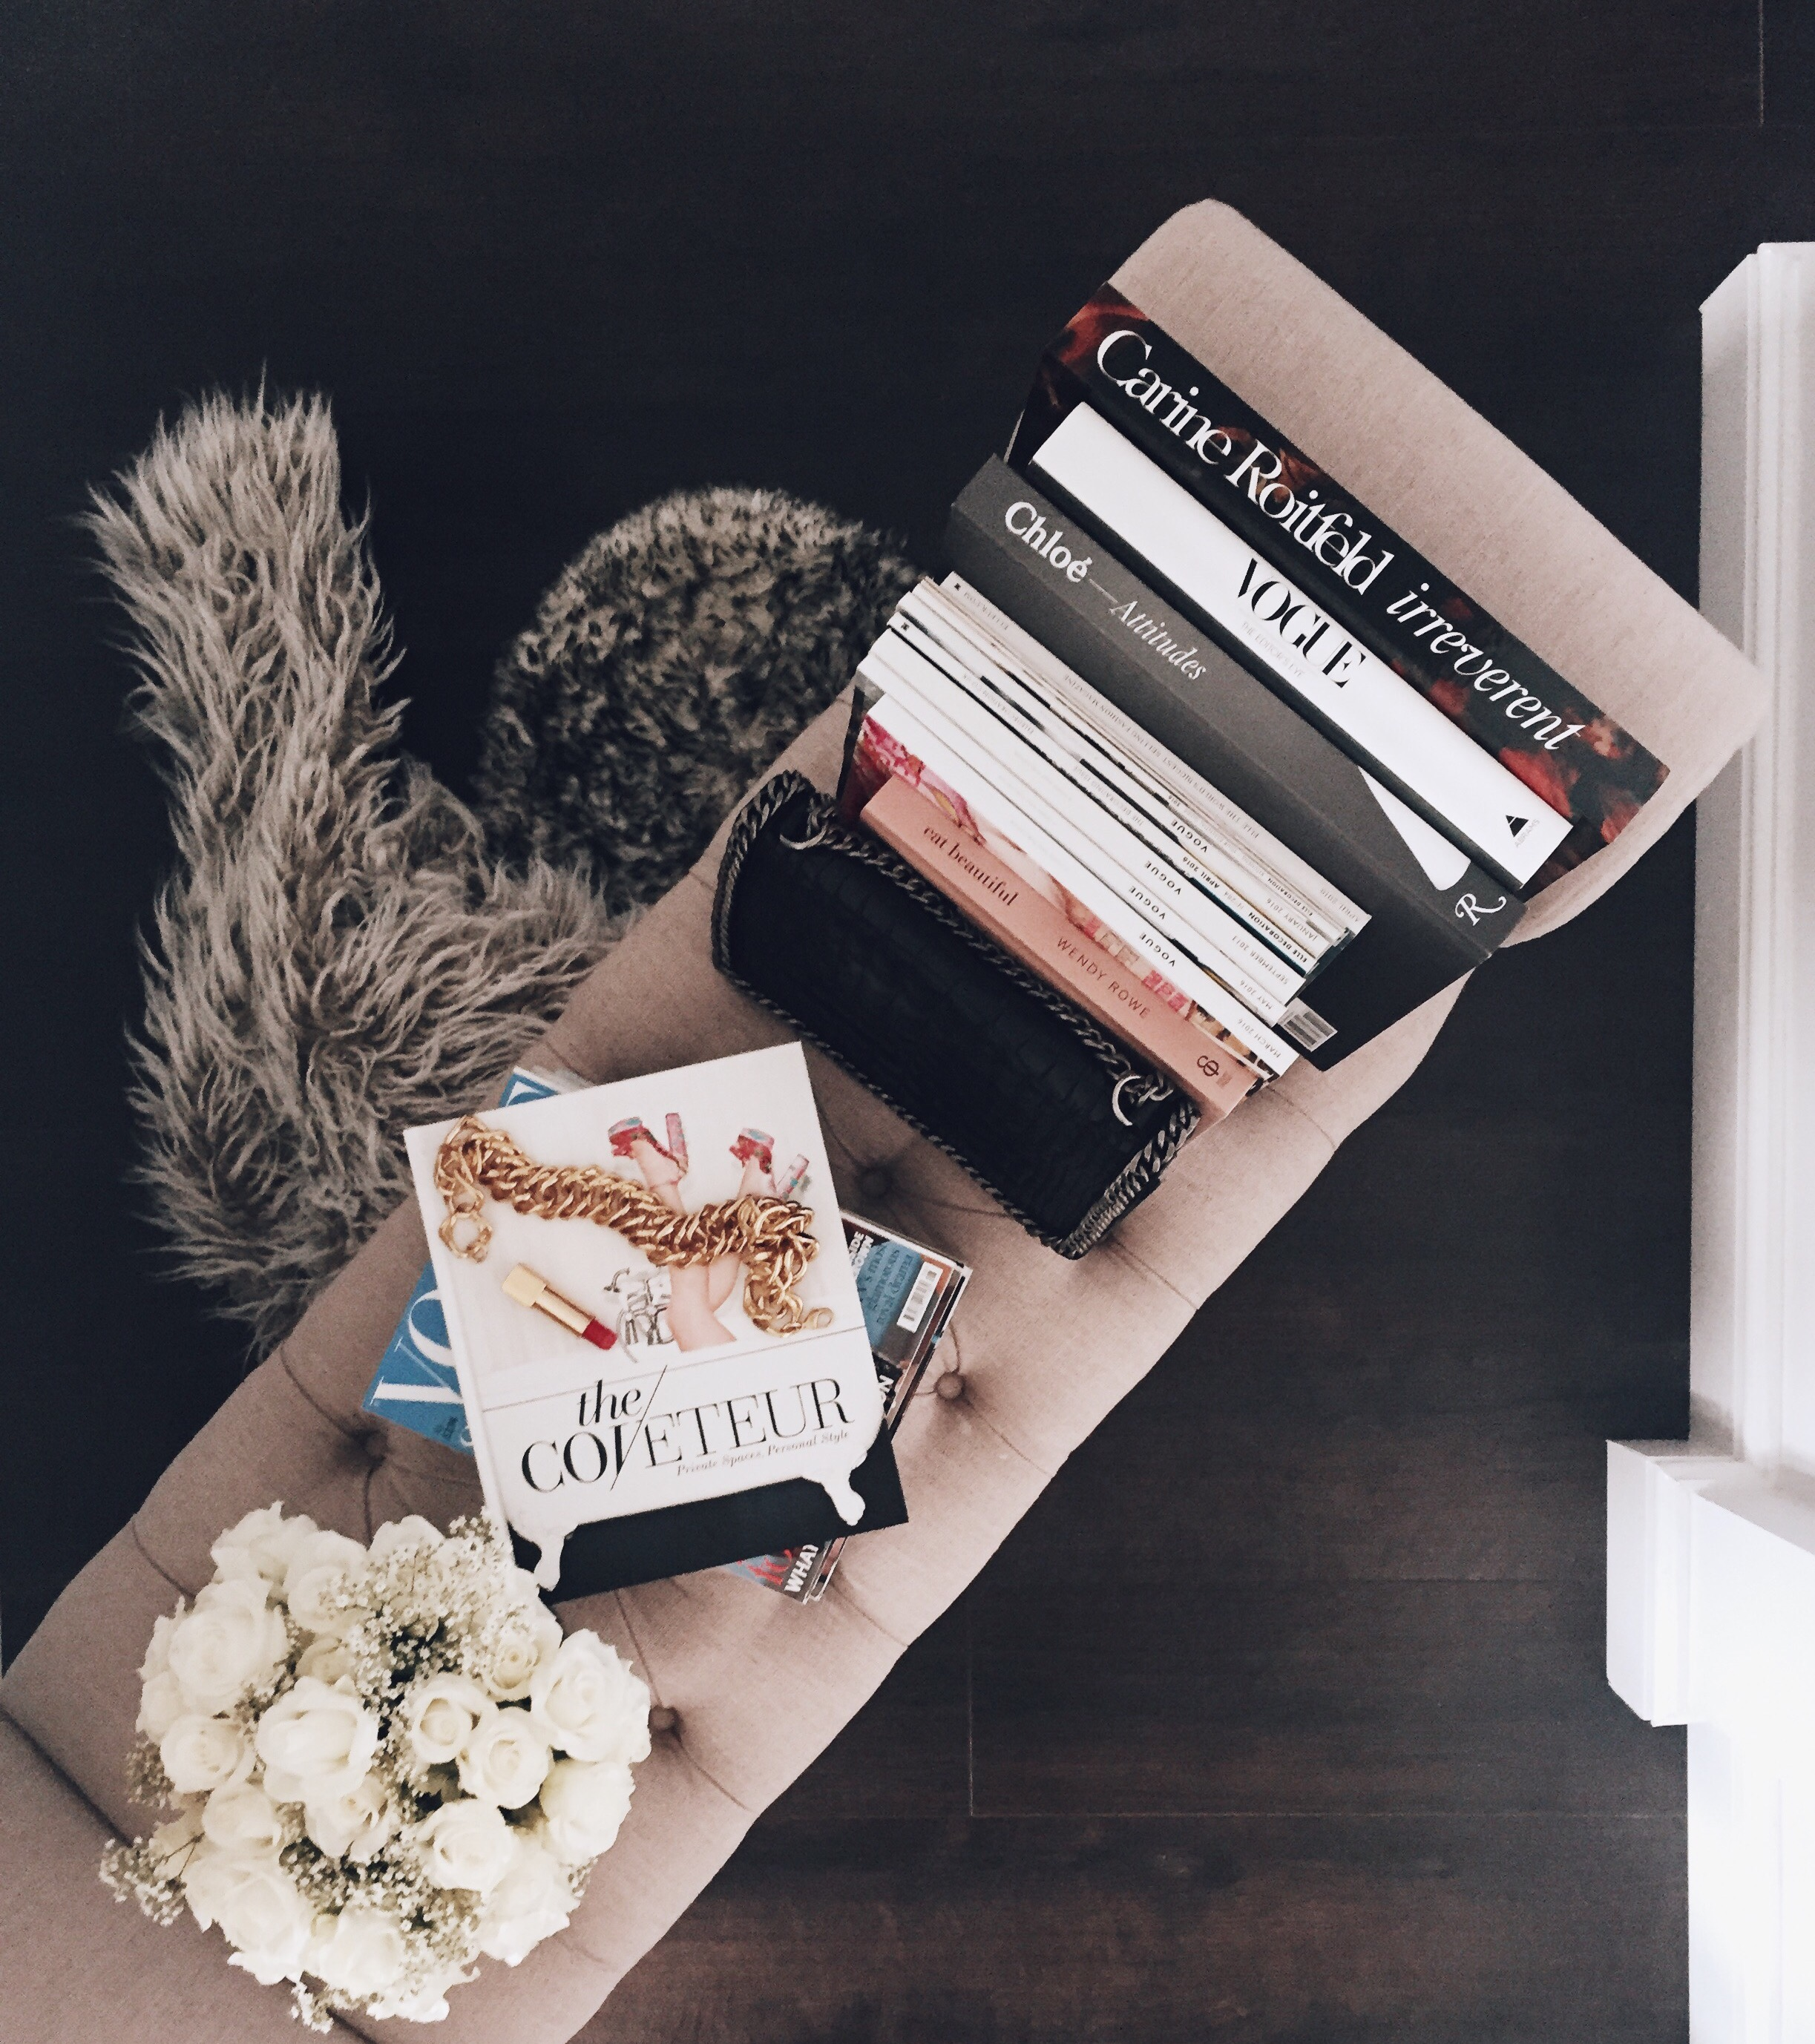 Interior styling x coffee table books